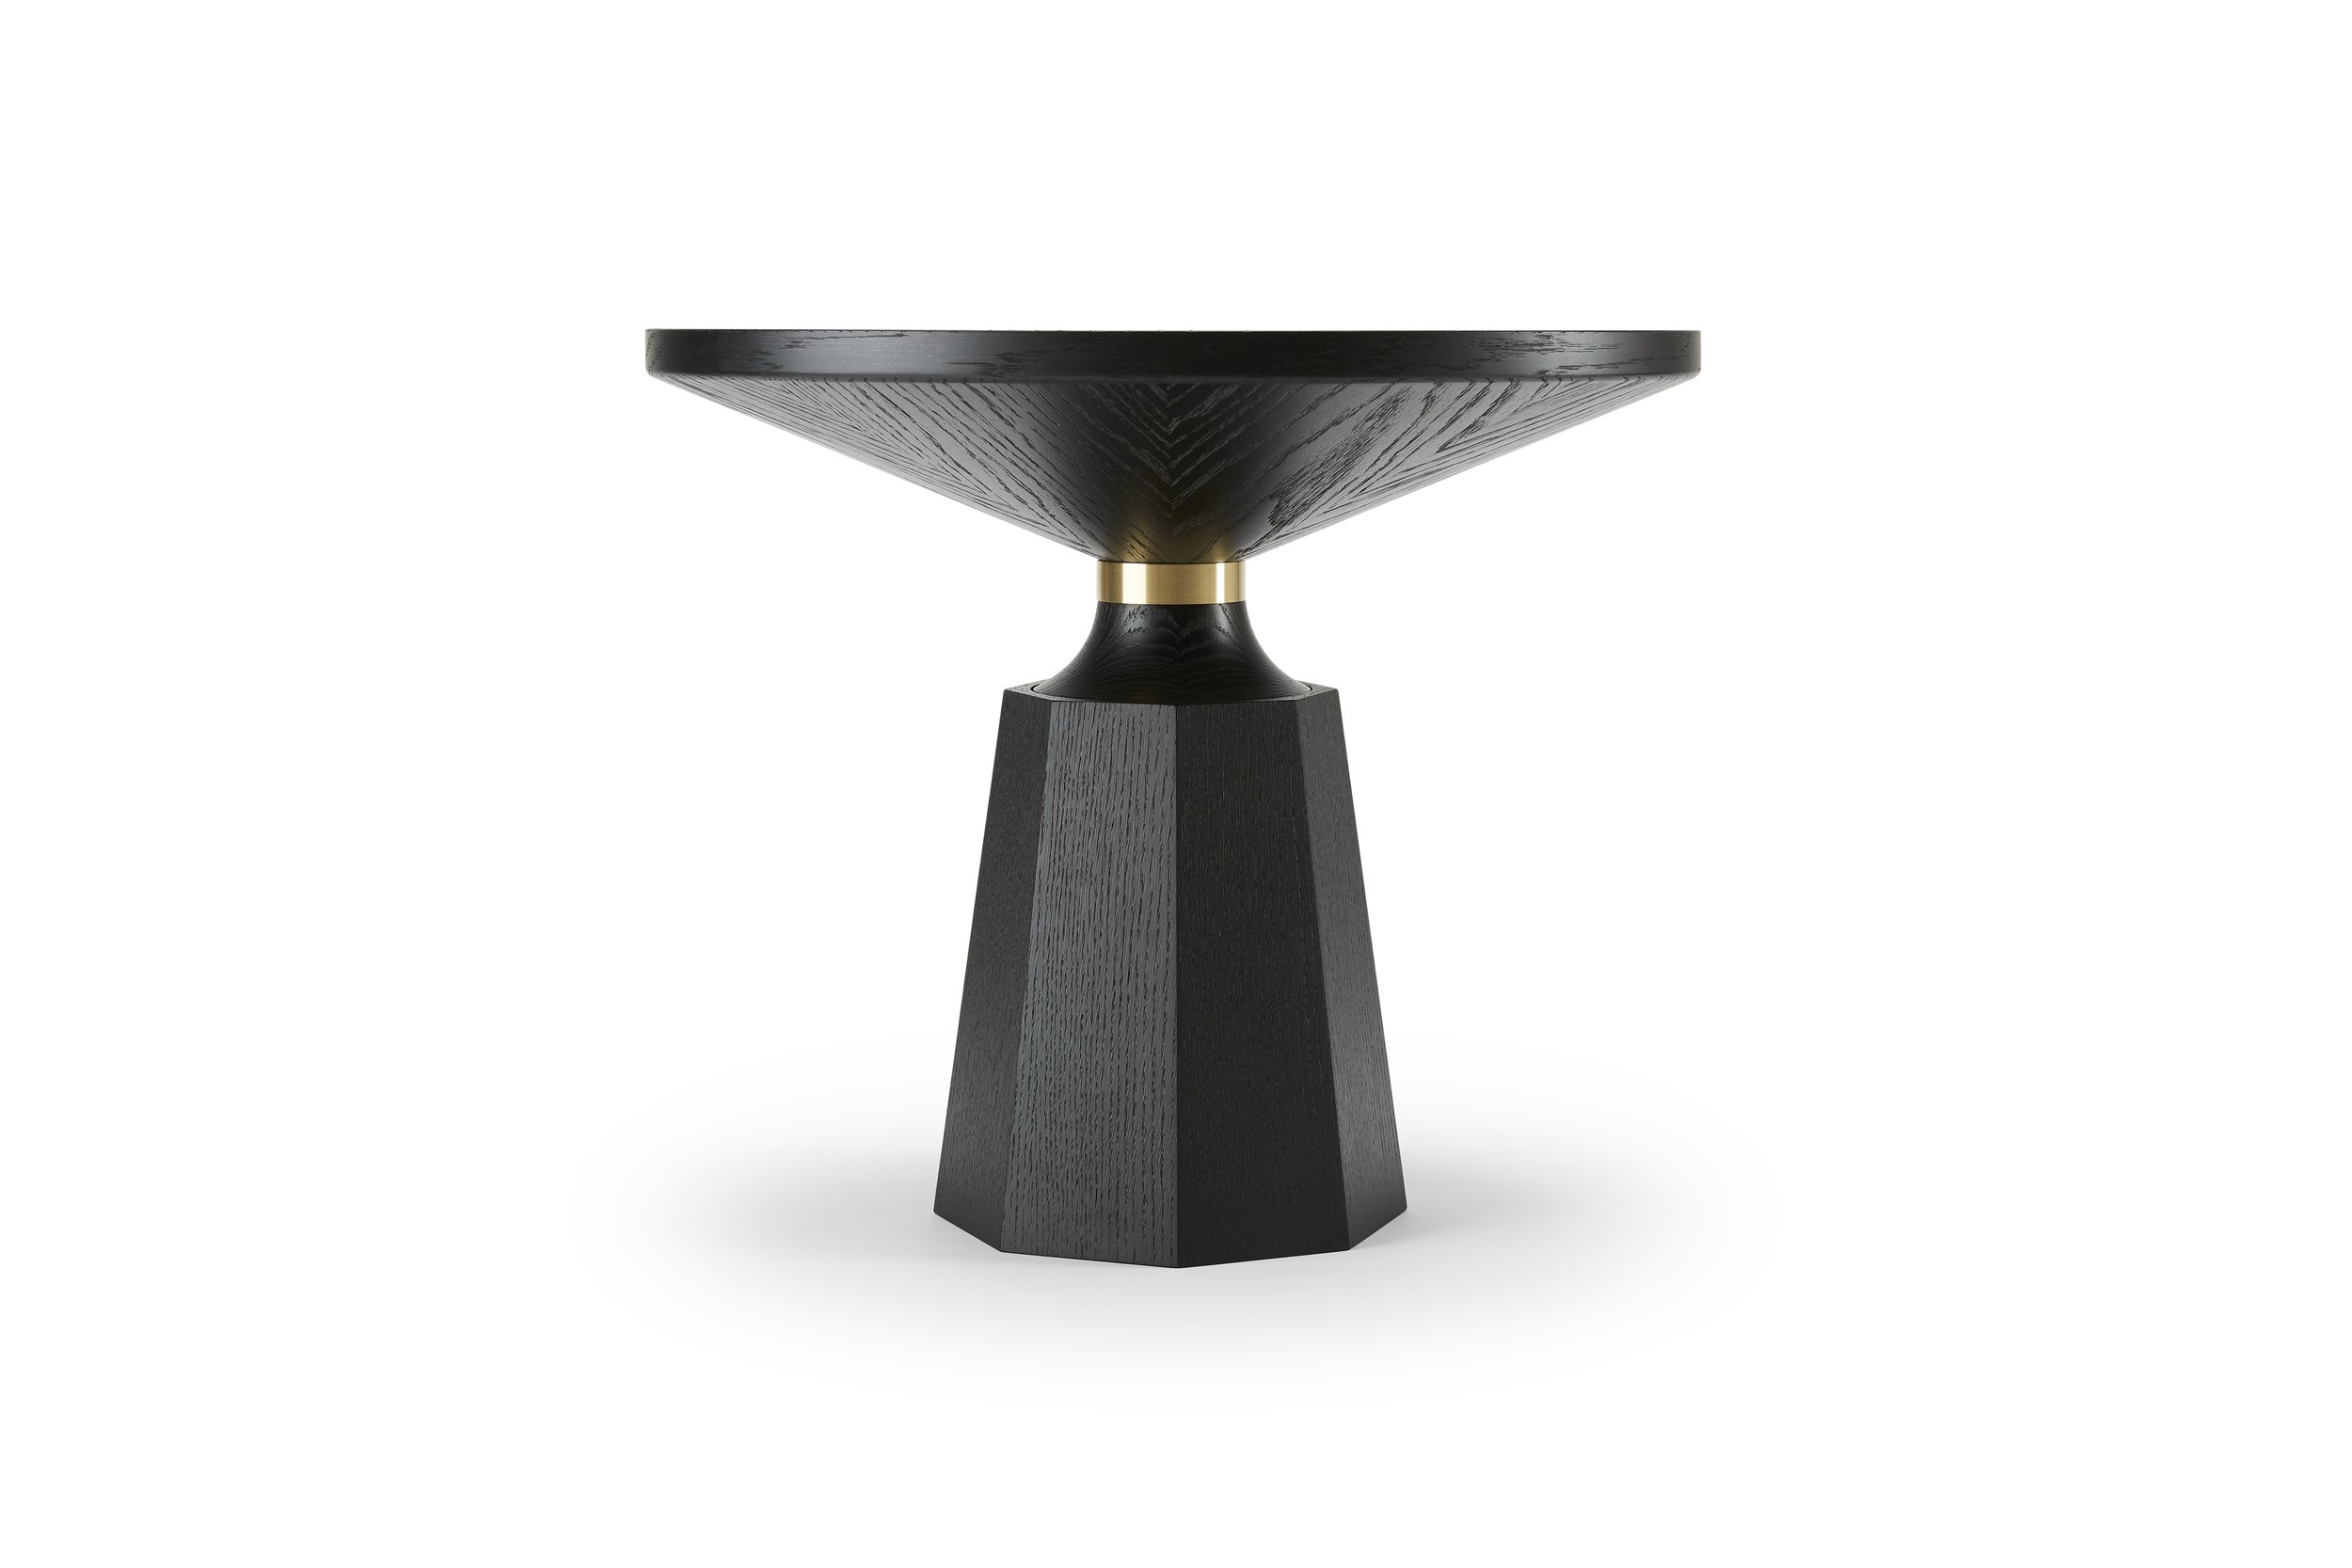 NICOLE I I  Crafted by hand from solid and veneered oak or walnut, this table has a simple yet graphically striking silhouette punctuated by the machined metal collar.